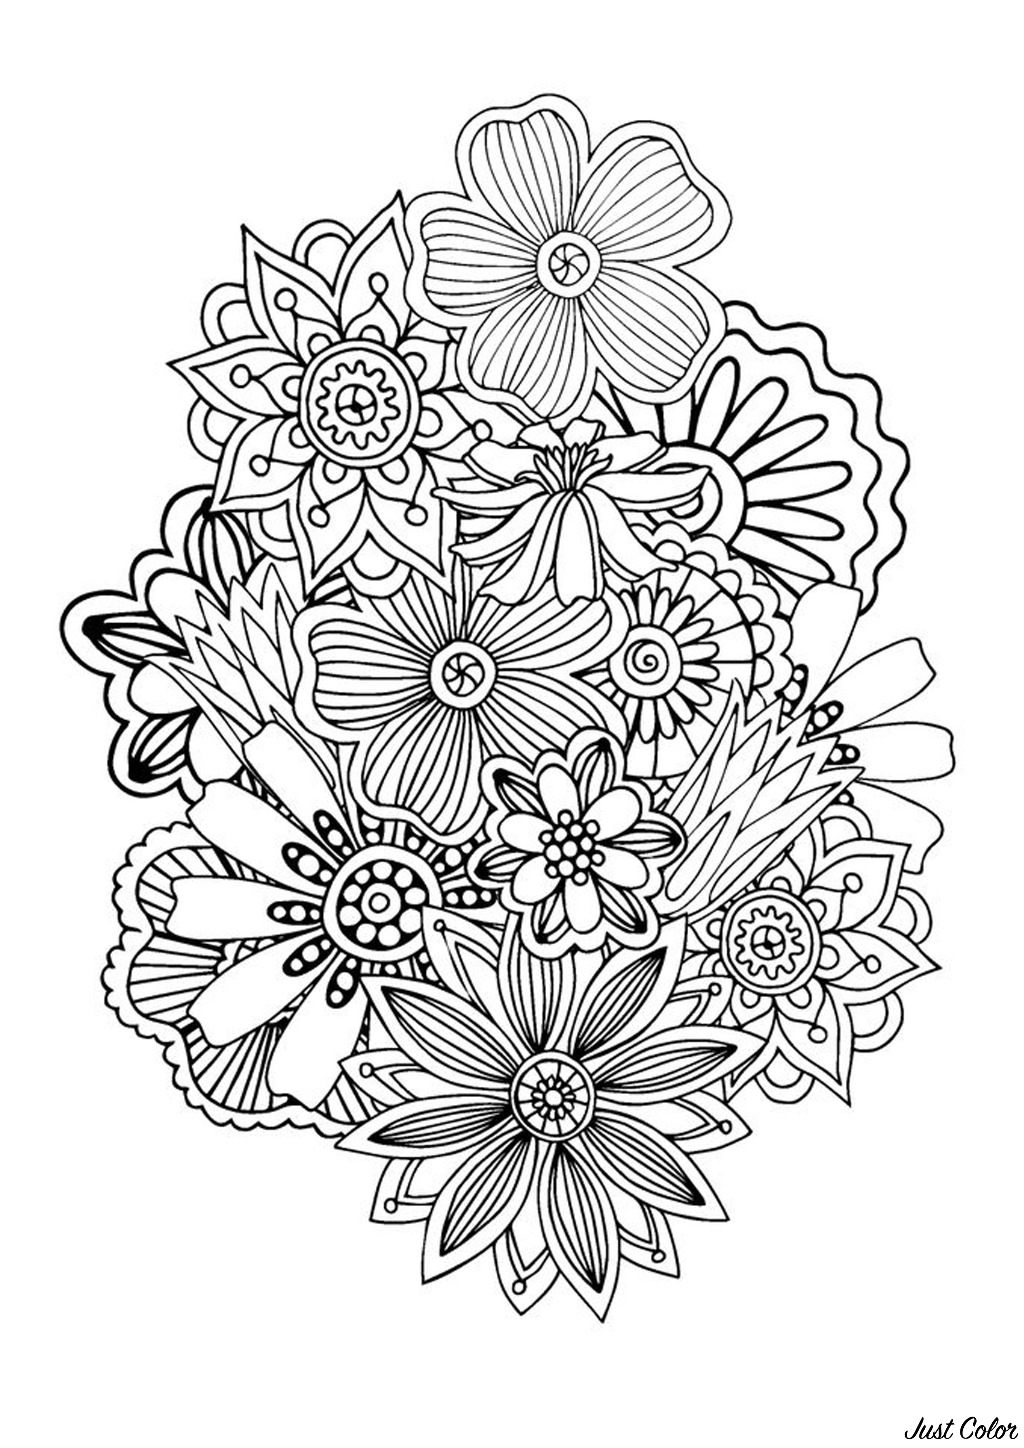 Zen & Anti-stress Coloring page : Abstract pattern inspired by flowers : n°1, by Juliasnegireva (Source : 123rf)